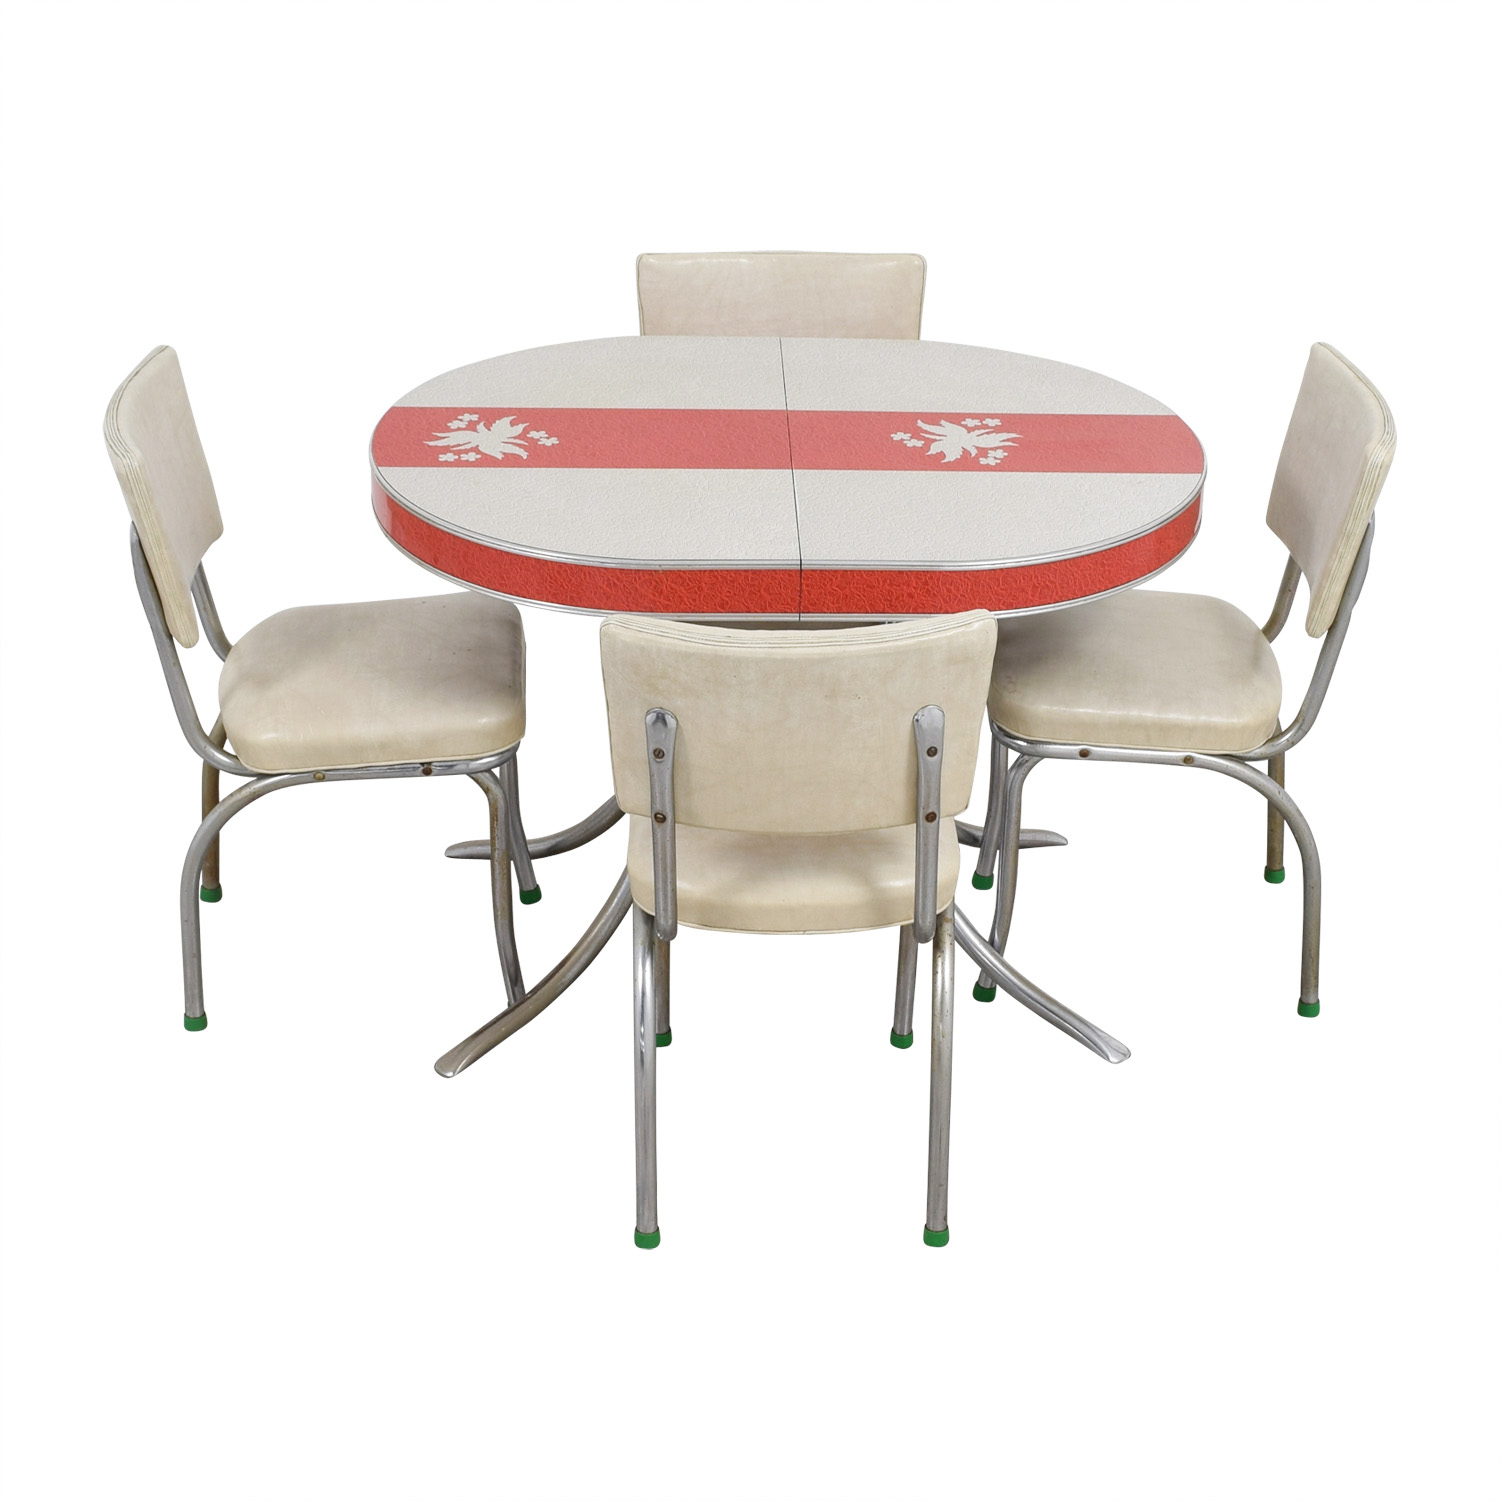 buy Vintage Extendable Formica Top Aluminum Kitchen Table and Chairs online